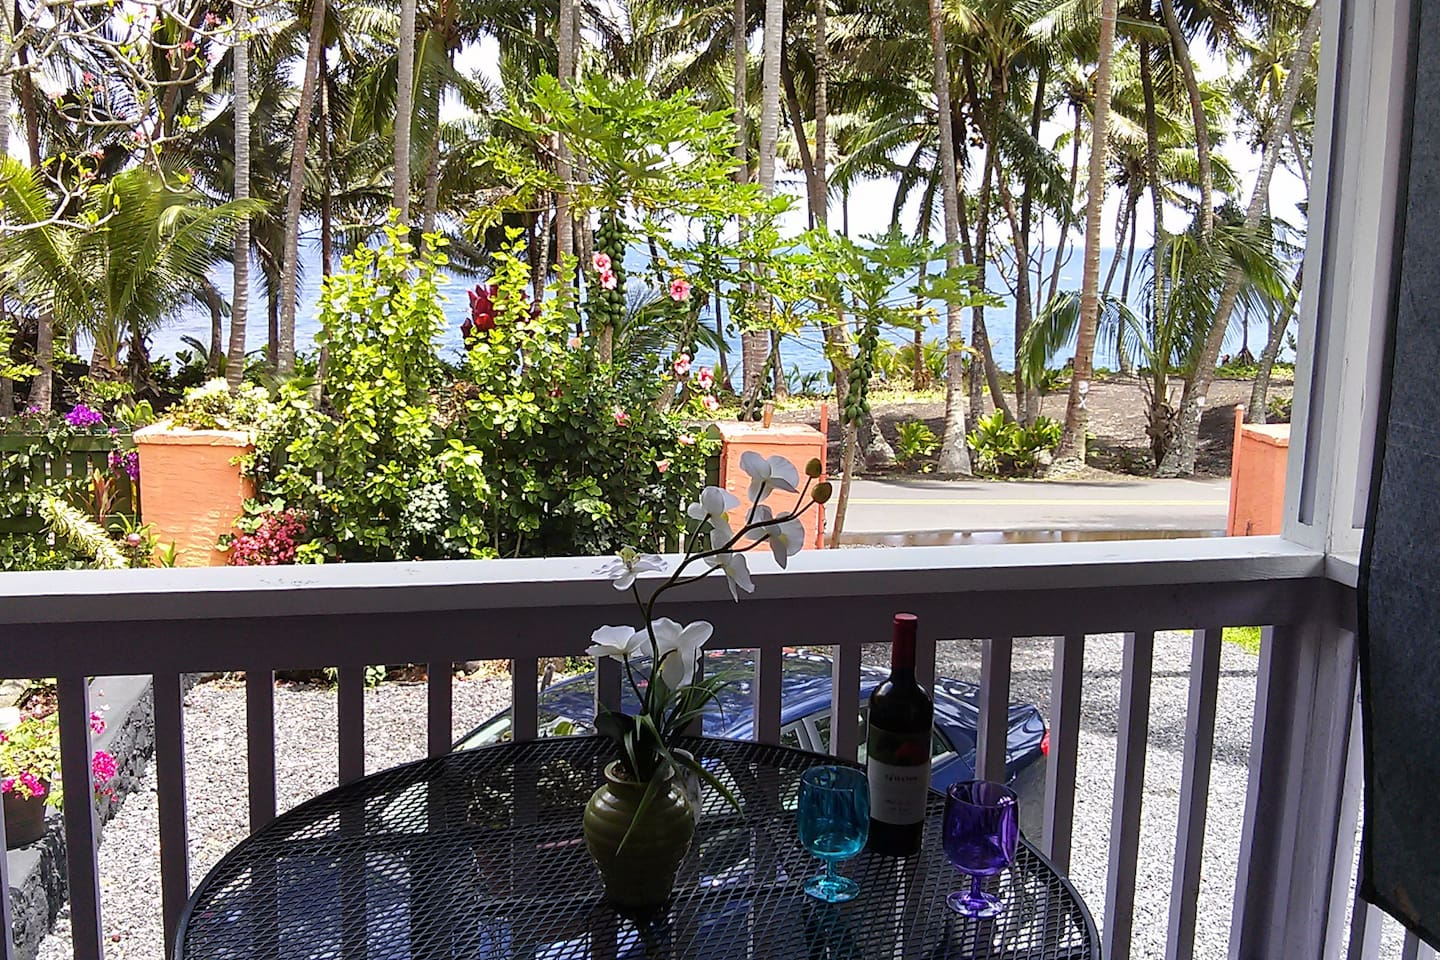 Picture yourself on this lanai watching the whales go by while sipping a glass of wine and listening to the waves crashing on the cliffs.